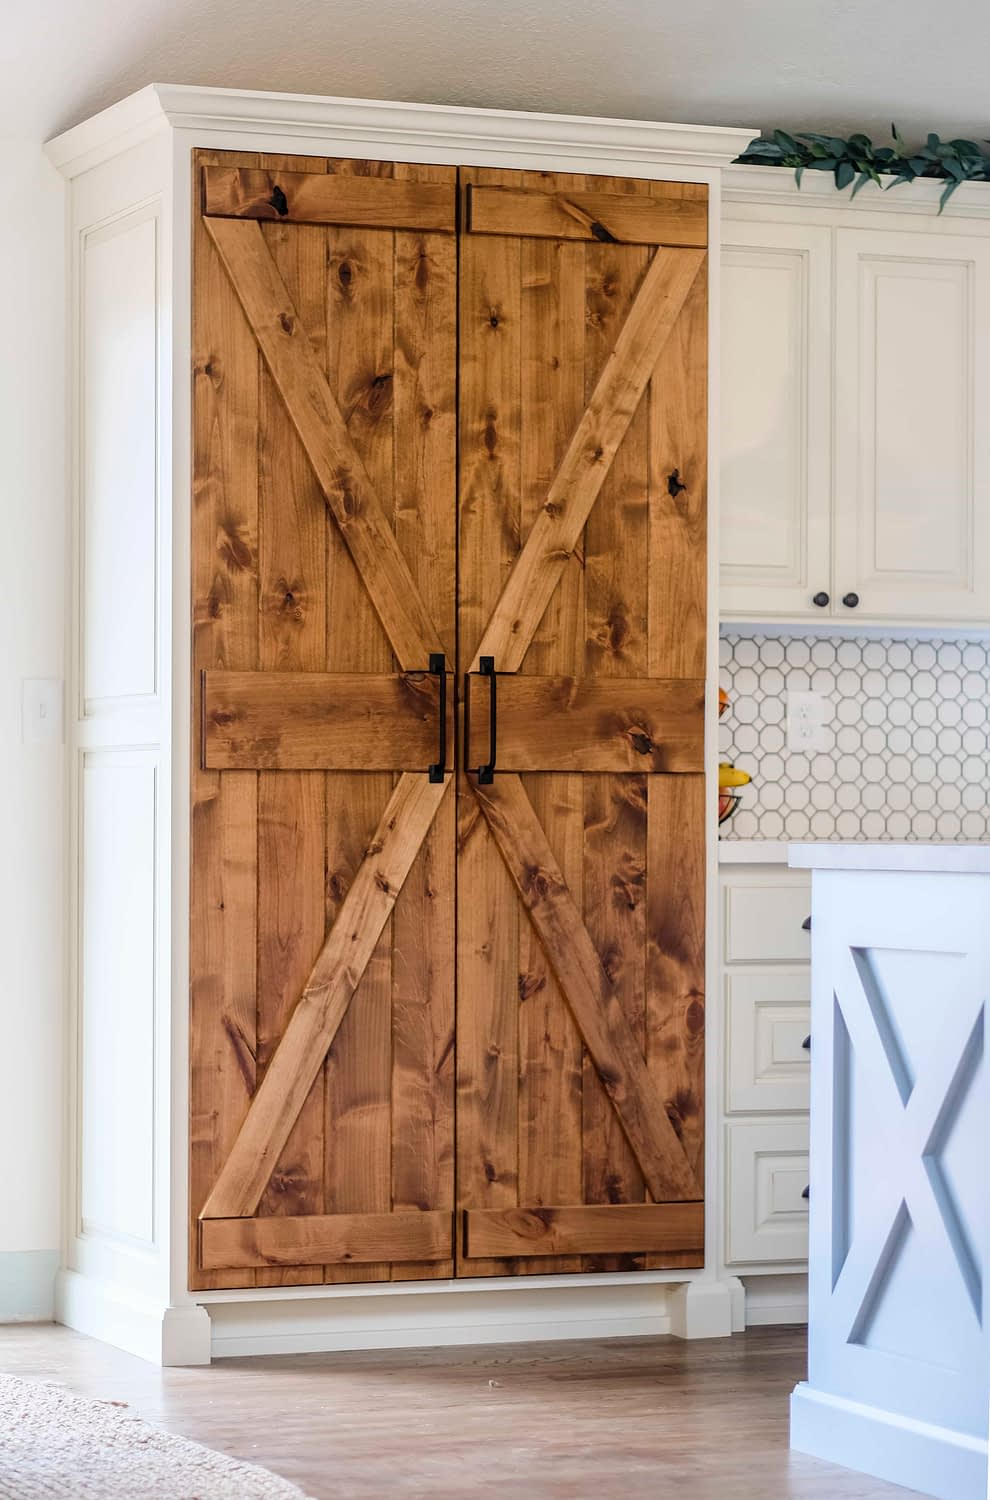 Rustic pantry barn doors for a kitchen on a budget